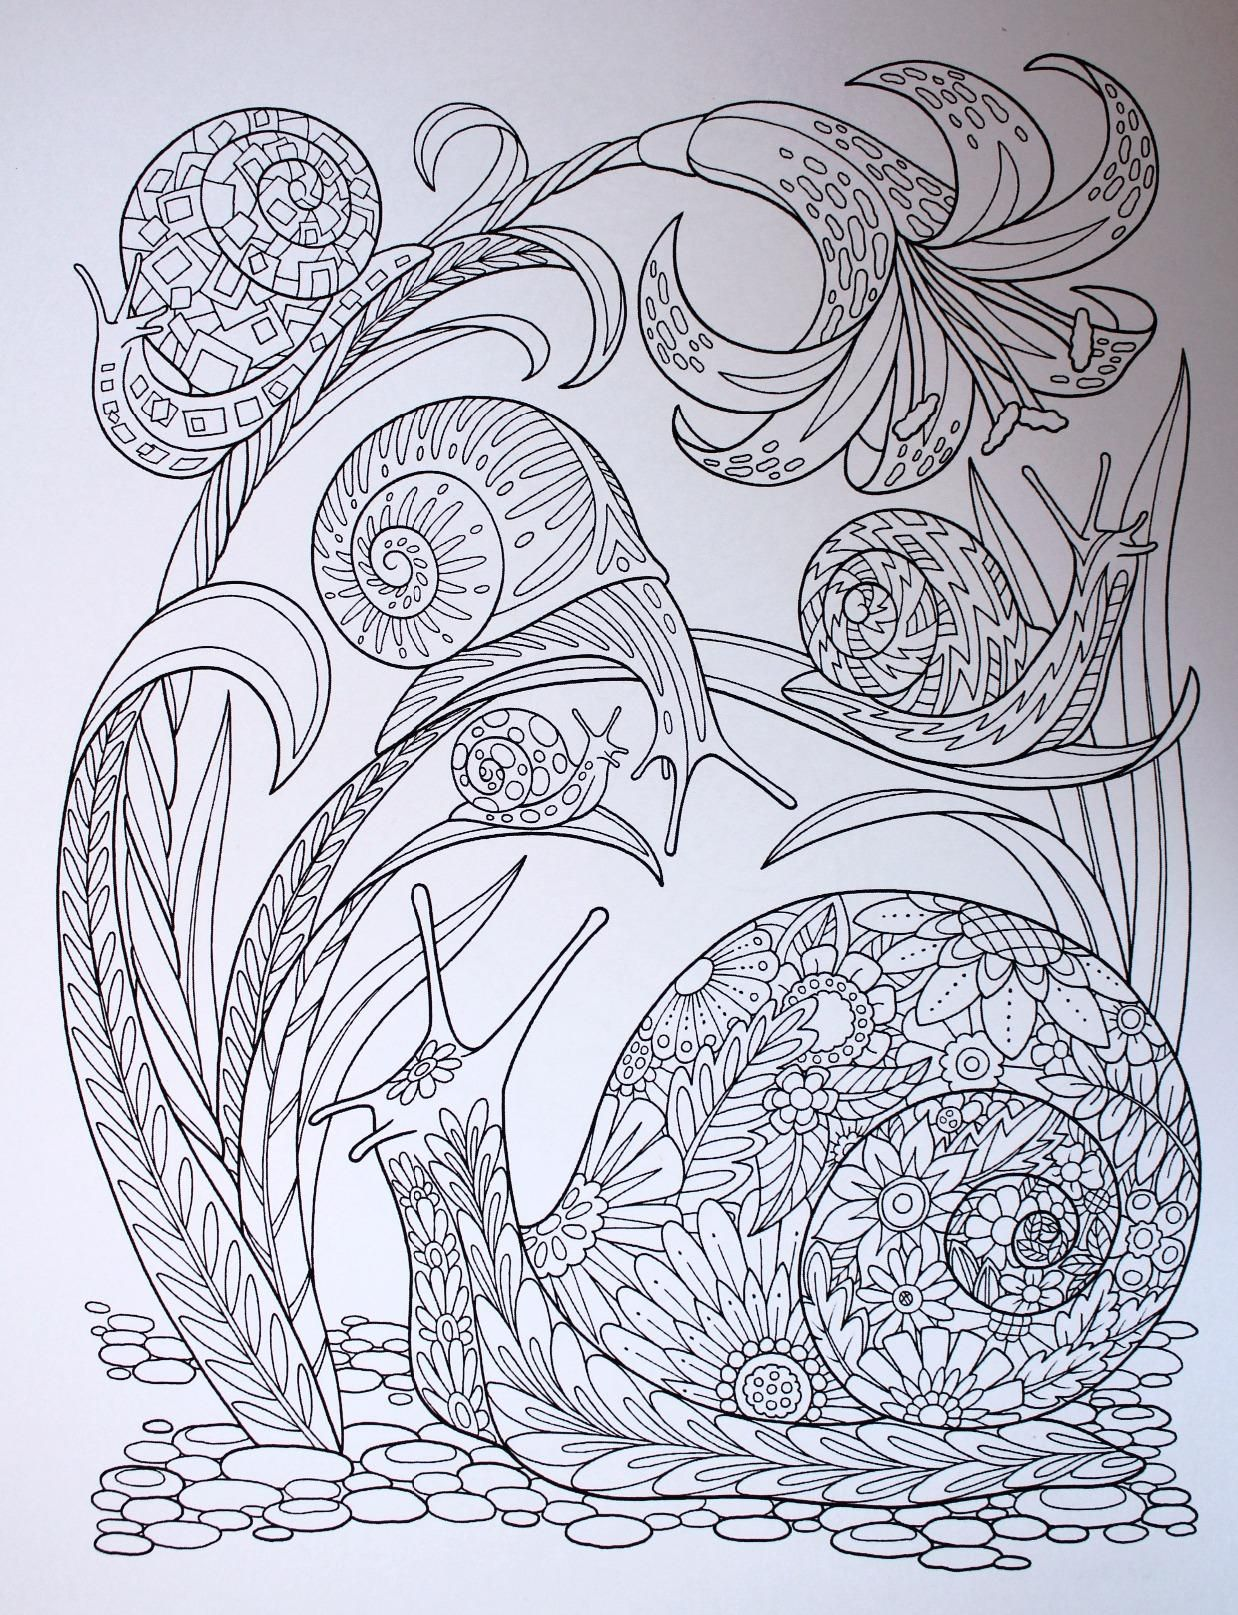 Amazon Com Garden Paths Coloring Book Inc And Kathryn Marlin Action Publishing Toys Games Coloring Books Abstract Art Painting Diy Coloring Pages